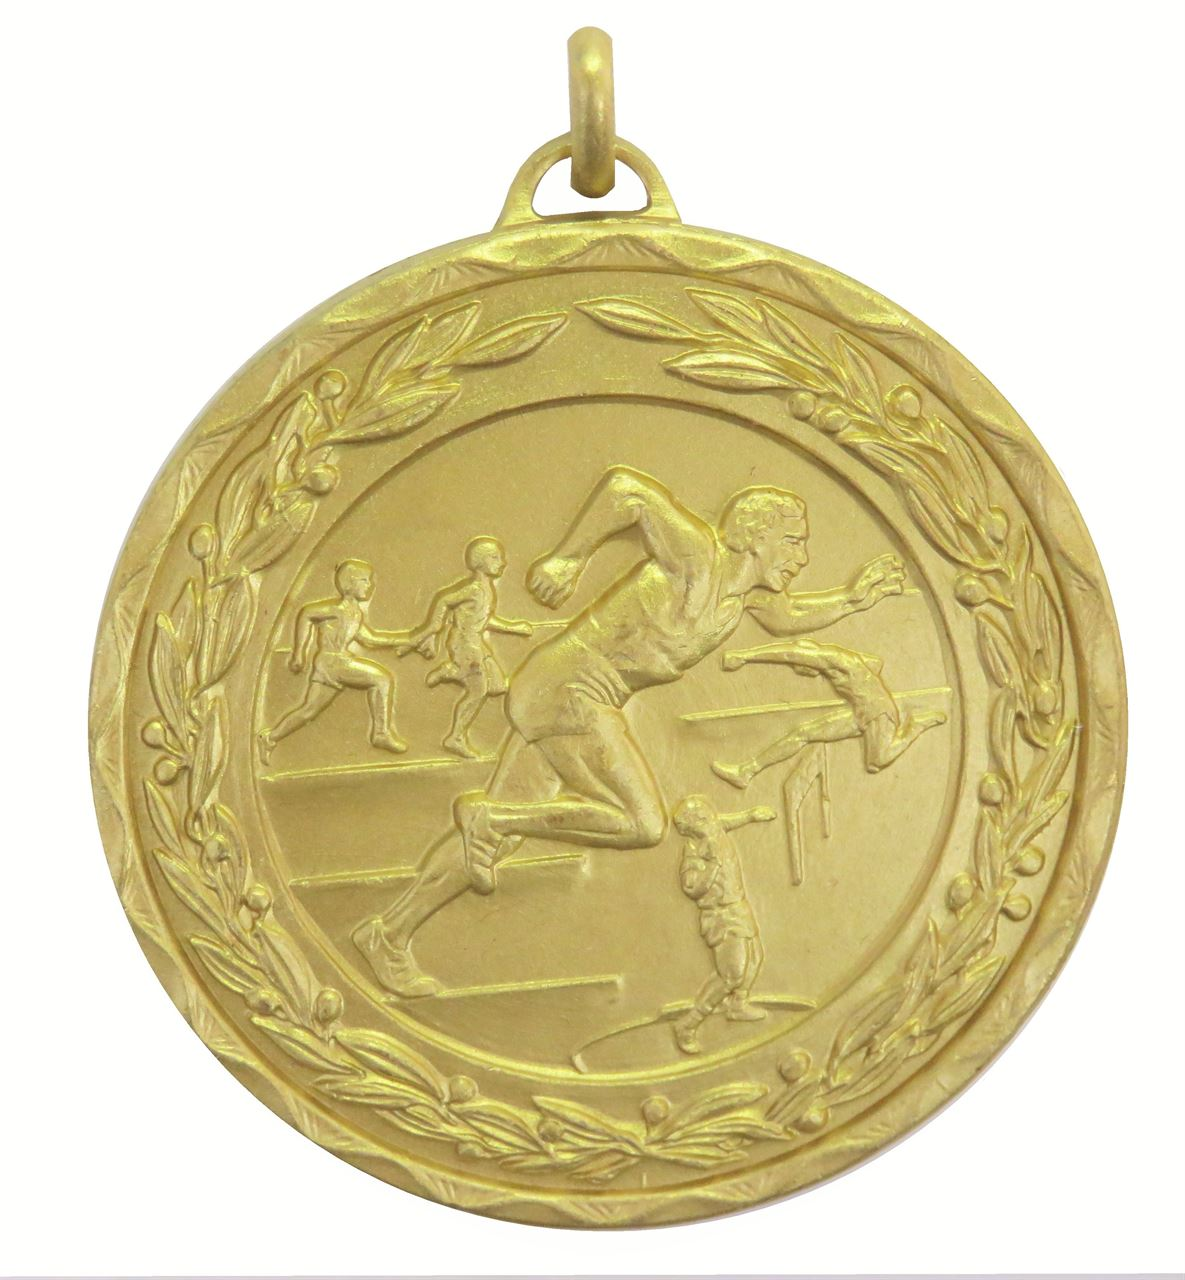 Gold Laurel Economy Male Track & Field Medal (size: 50mm) - 9672E